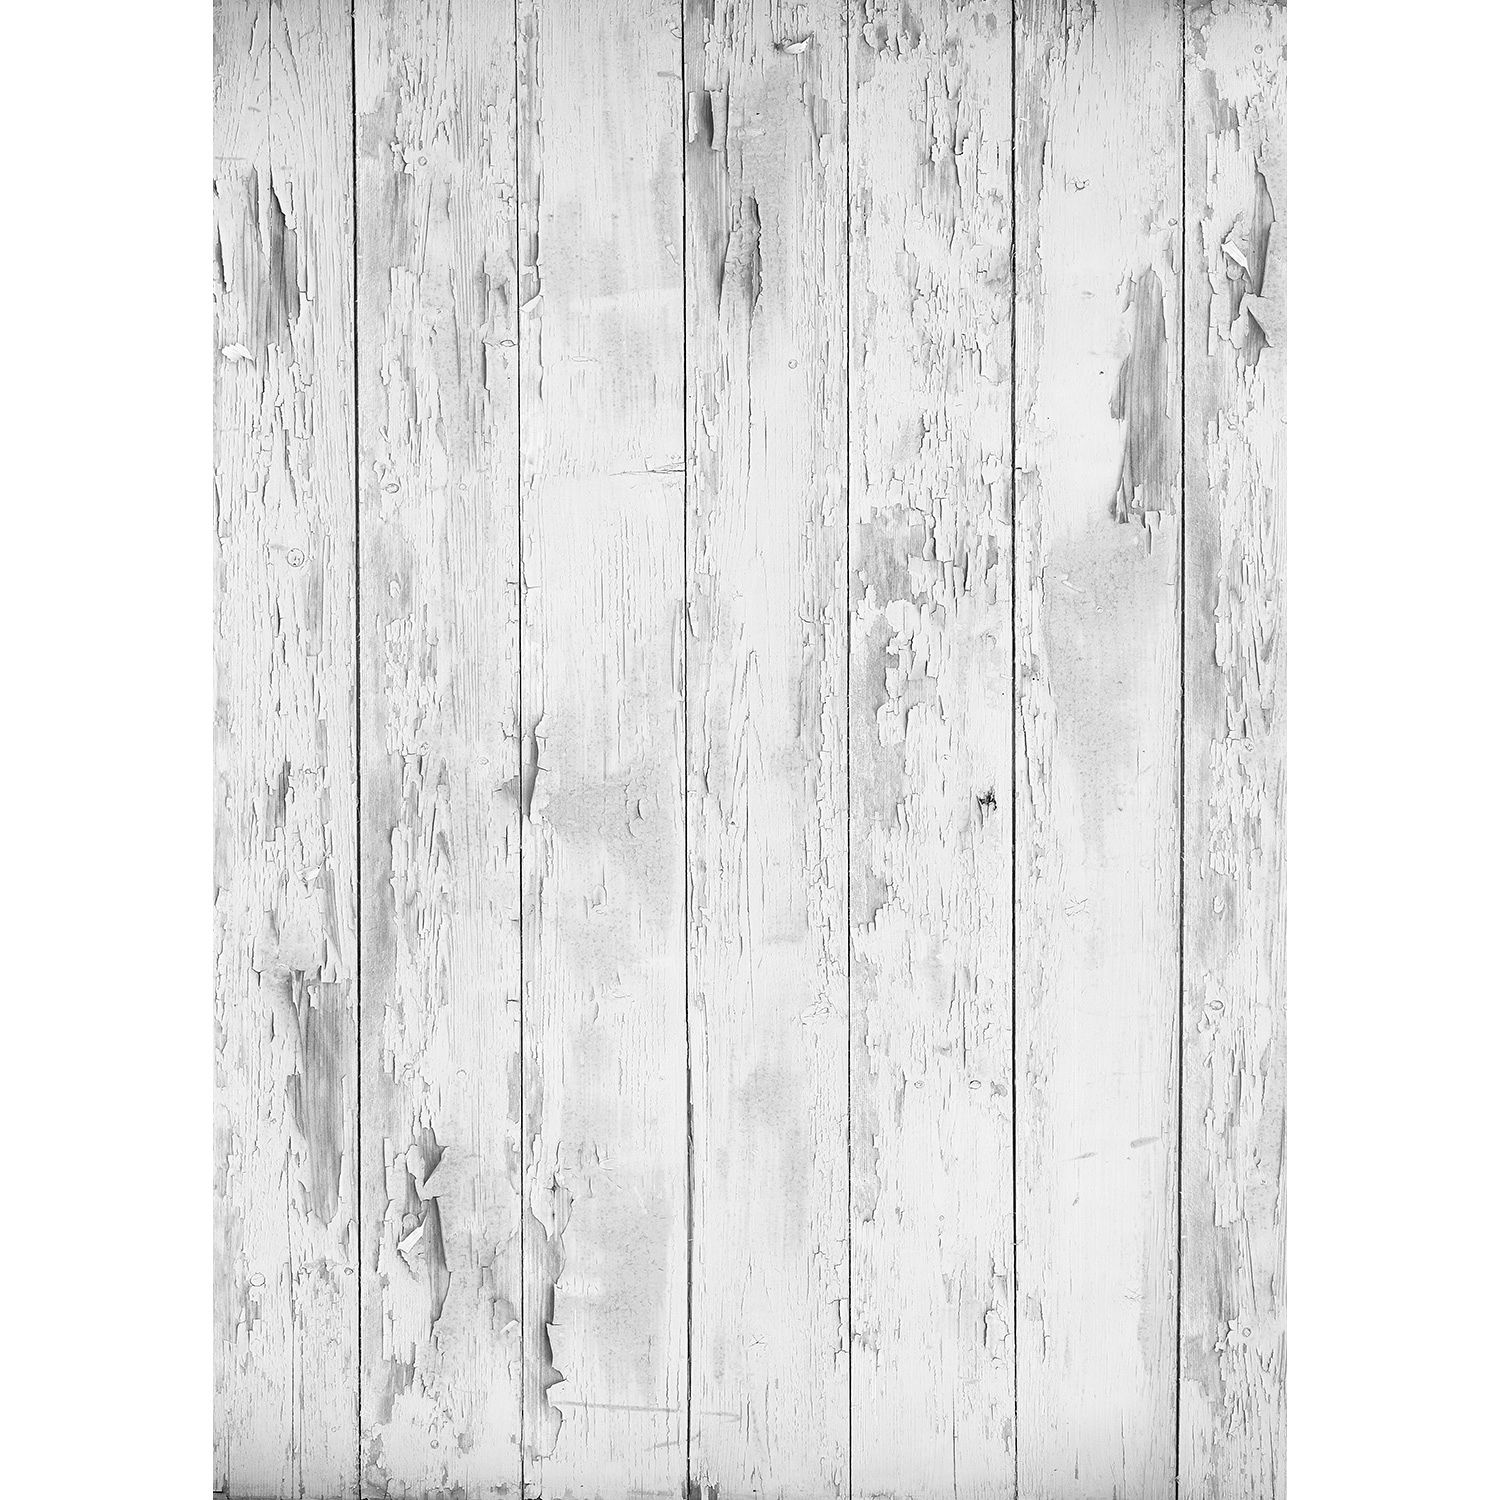 Westcott Distressed Wood Art Canvas Backdrop D0001 63x87 Cv Gy